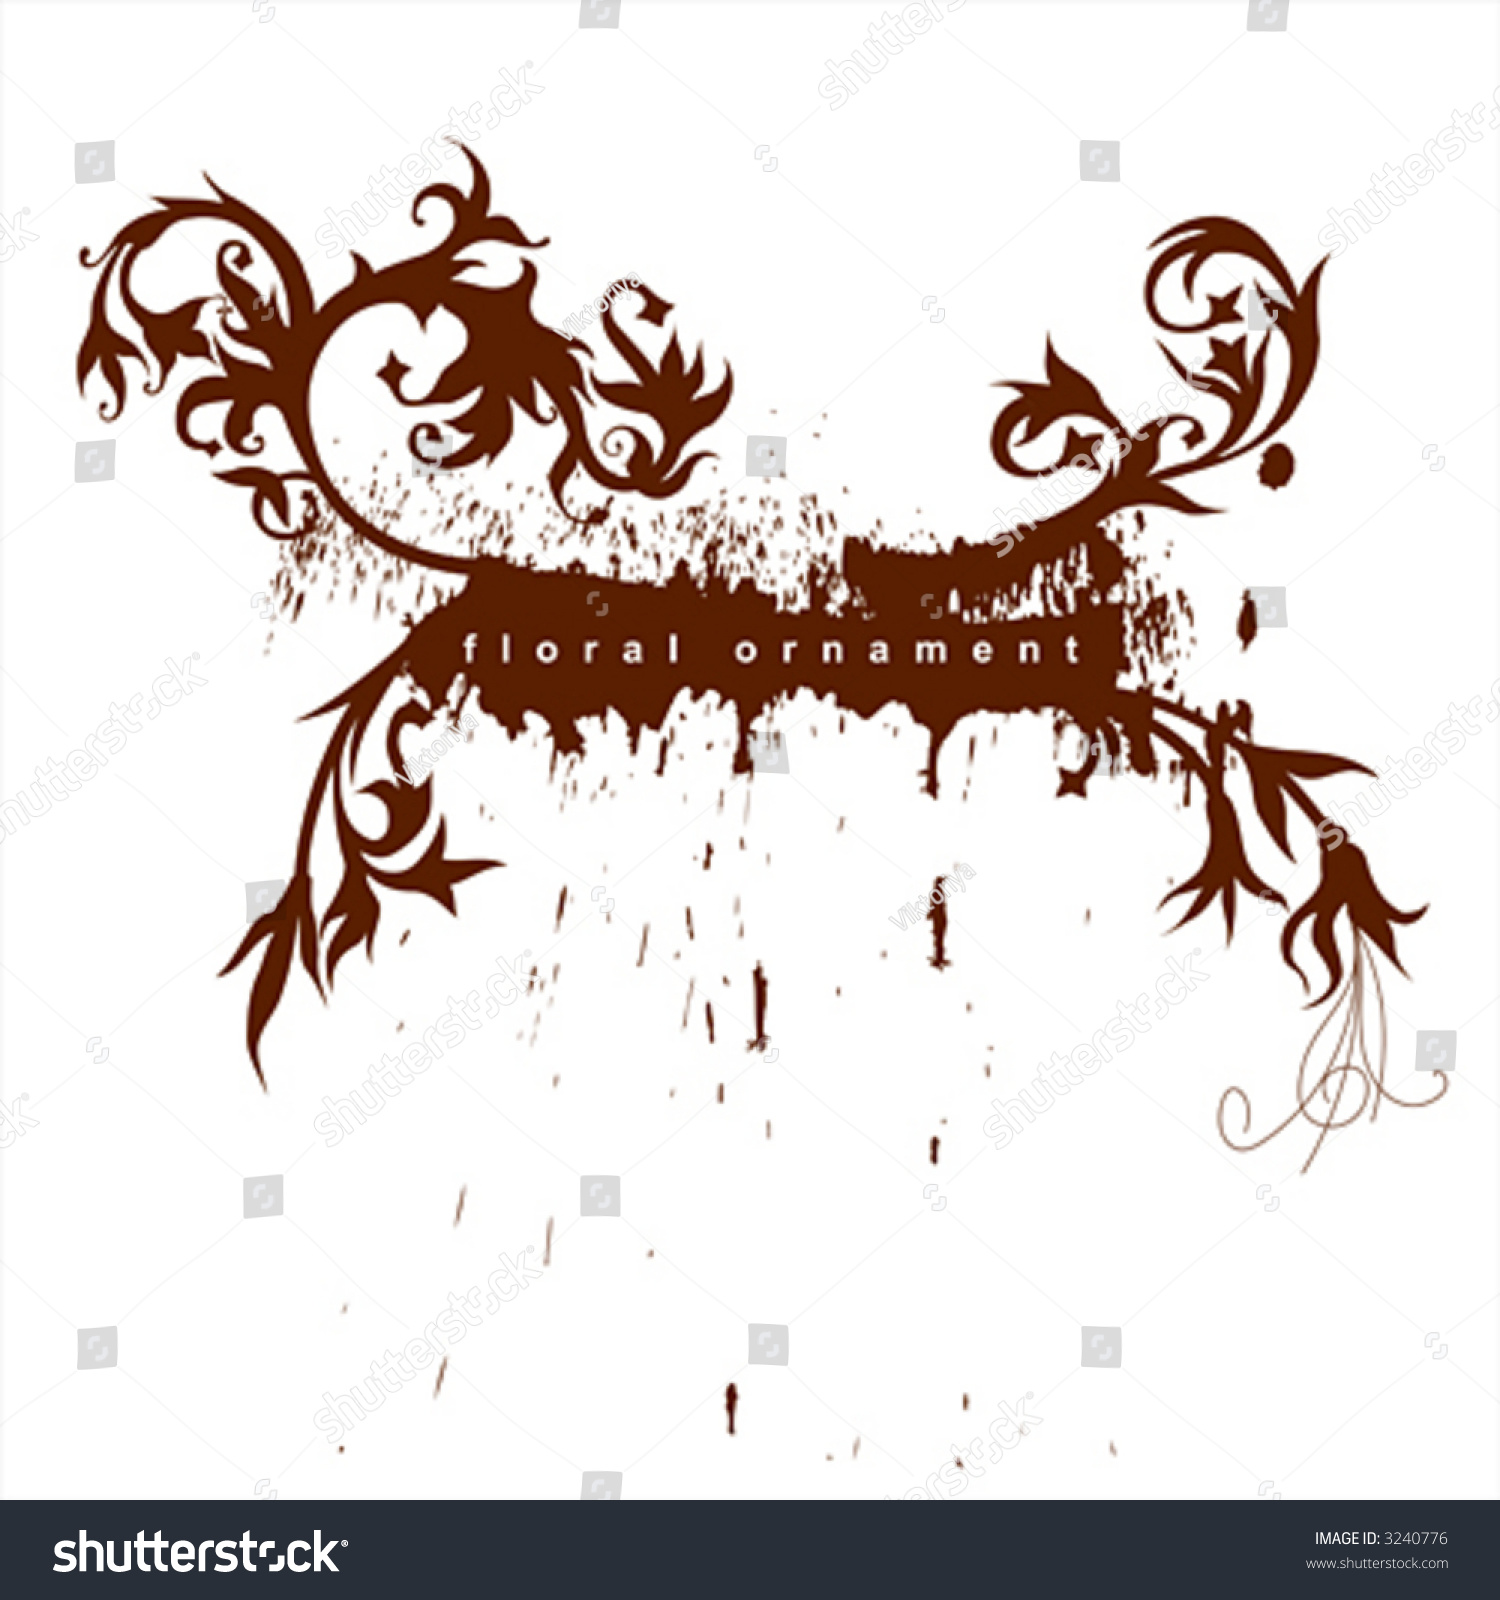 Calligraphy flowers ornament on brown grunge background